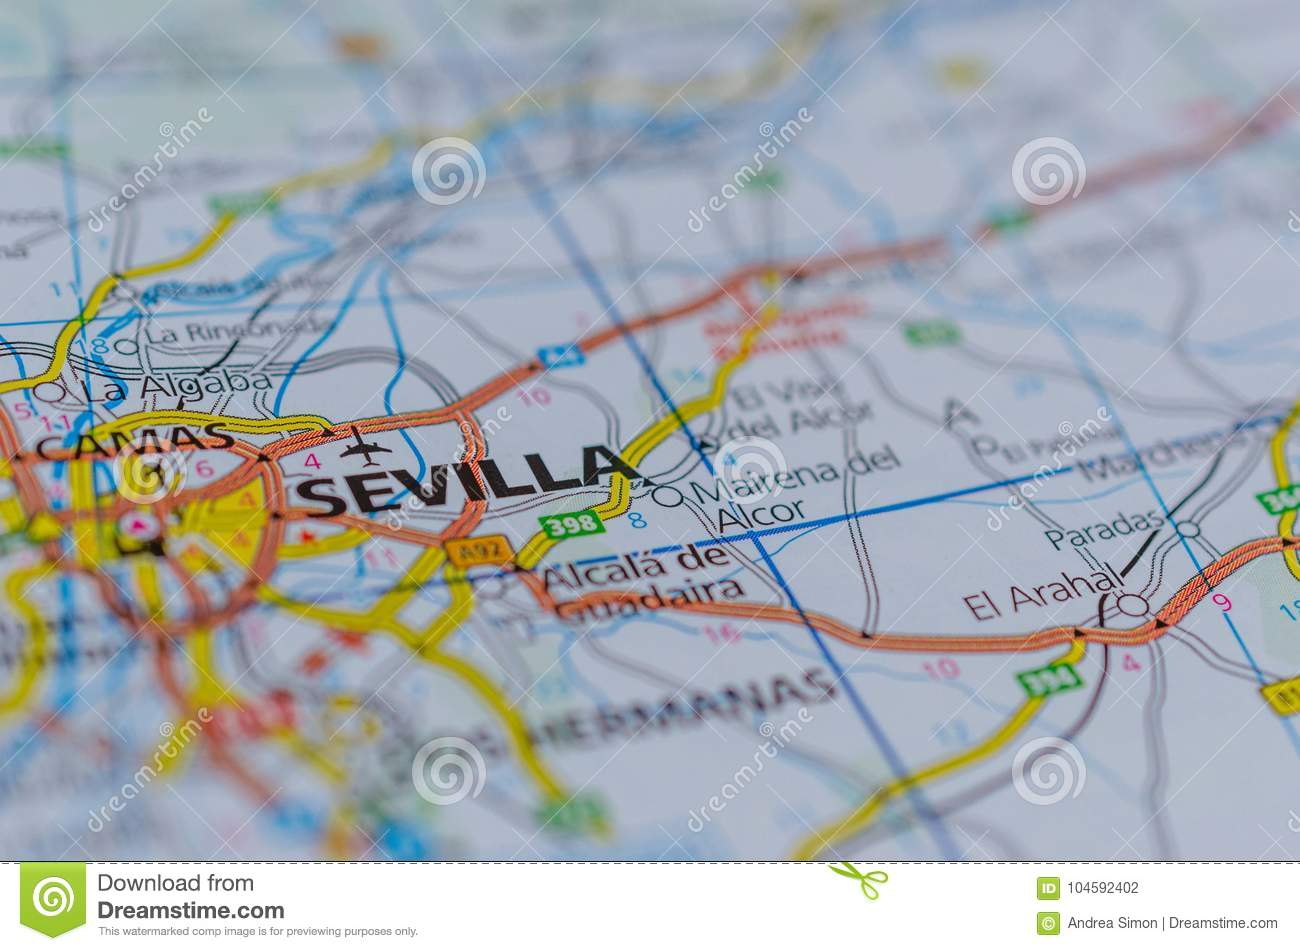 Sevilla on map stock photo Image of euro financial 104592402